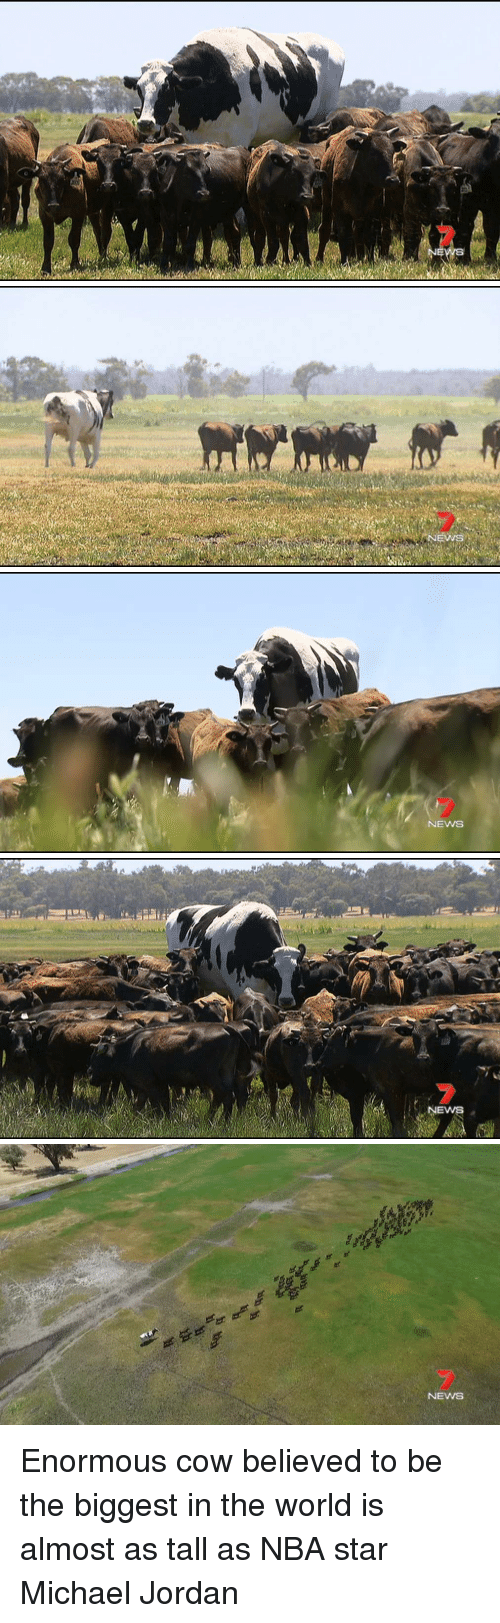 Michael Jordan, Nba, and News: NEWS   0  NEW   NEWSS Enormous cow believed to be the biggest in the world is almost as tall as NBA star Michael Jordan